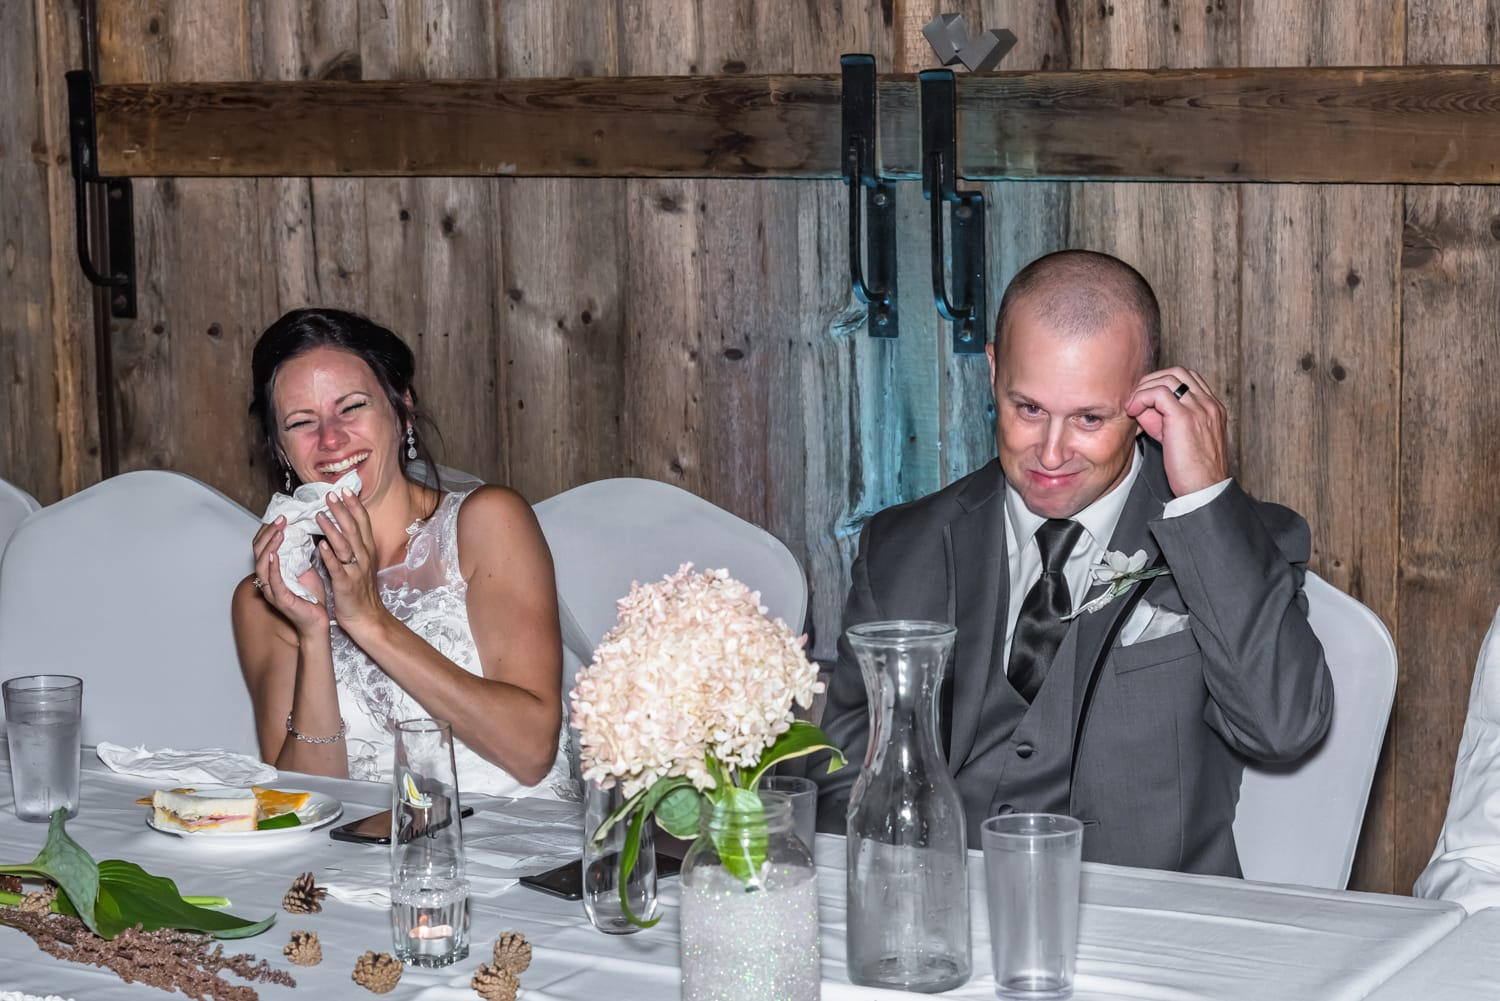 The bride and groom laughing at their wedding speeches during their wedding at the Old Orchard Inn.